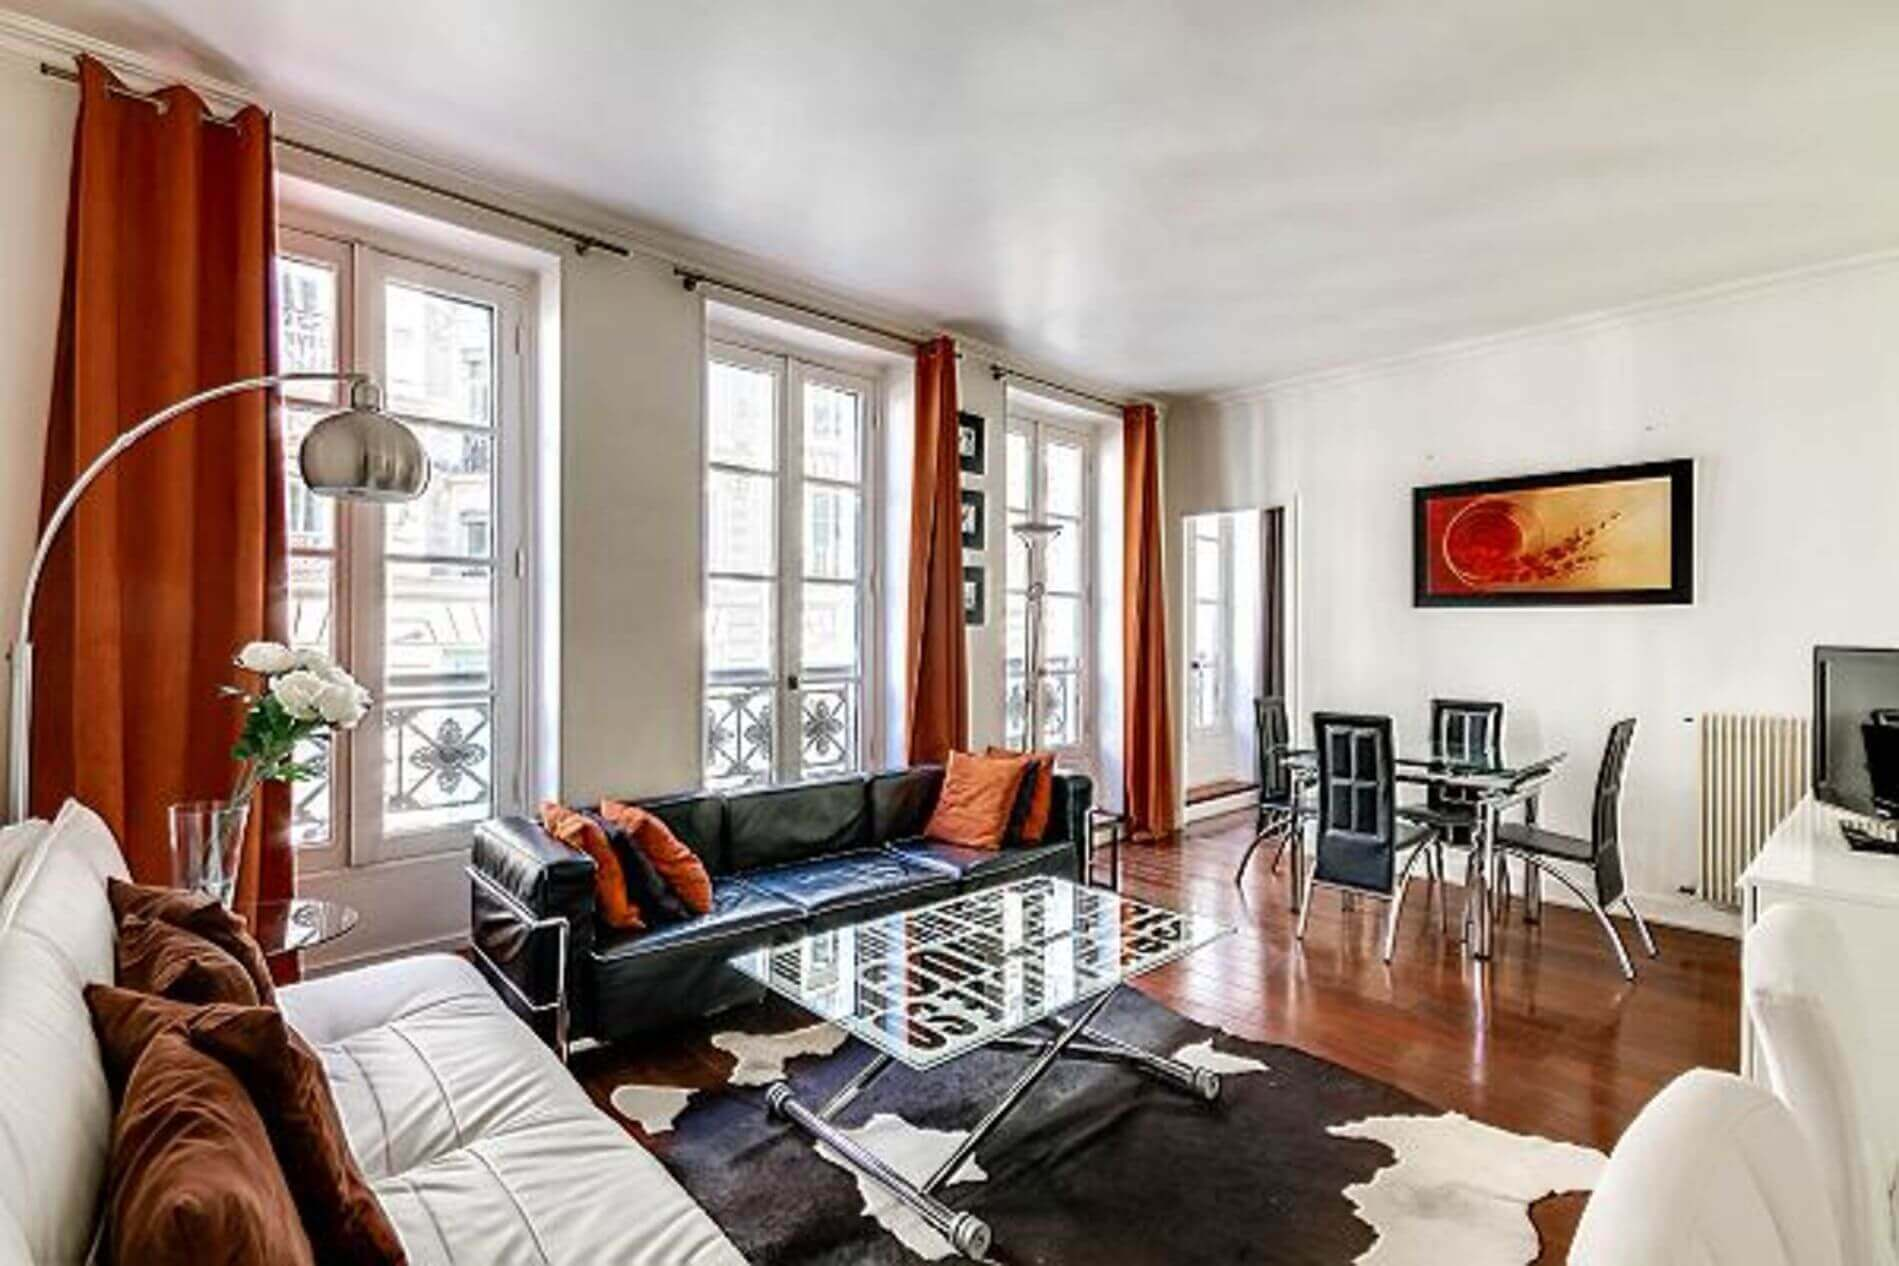 Furnished luxury rental in the 8th arrondissement